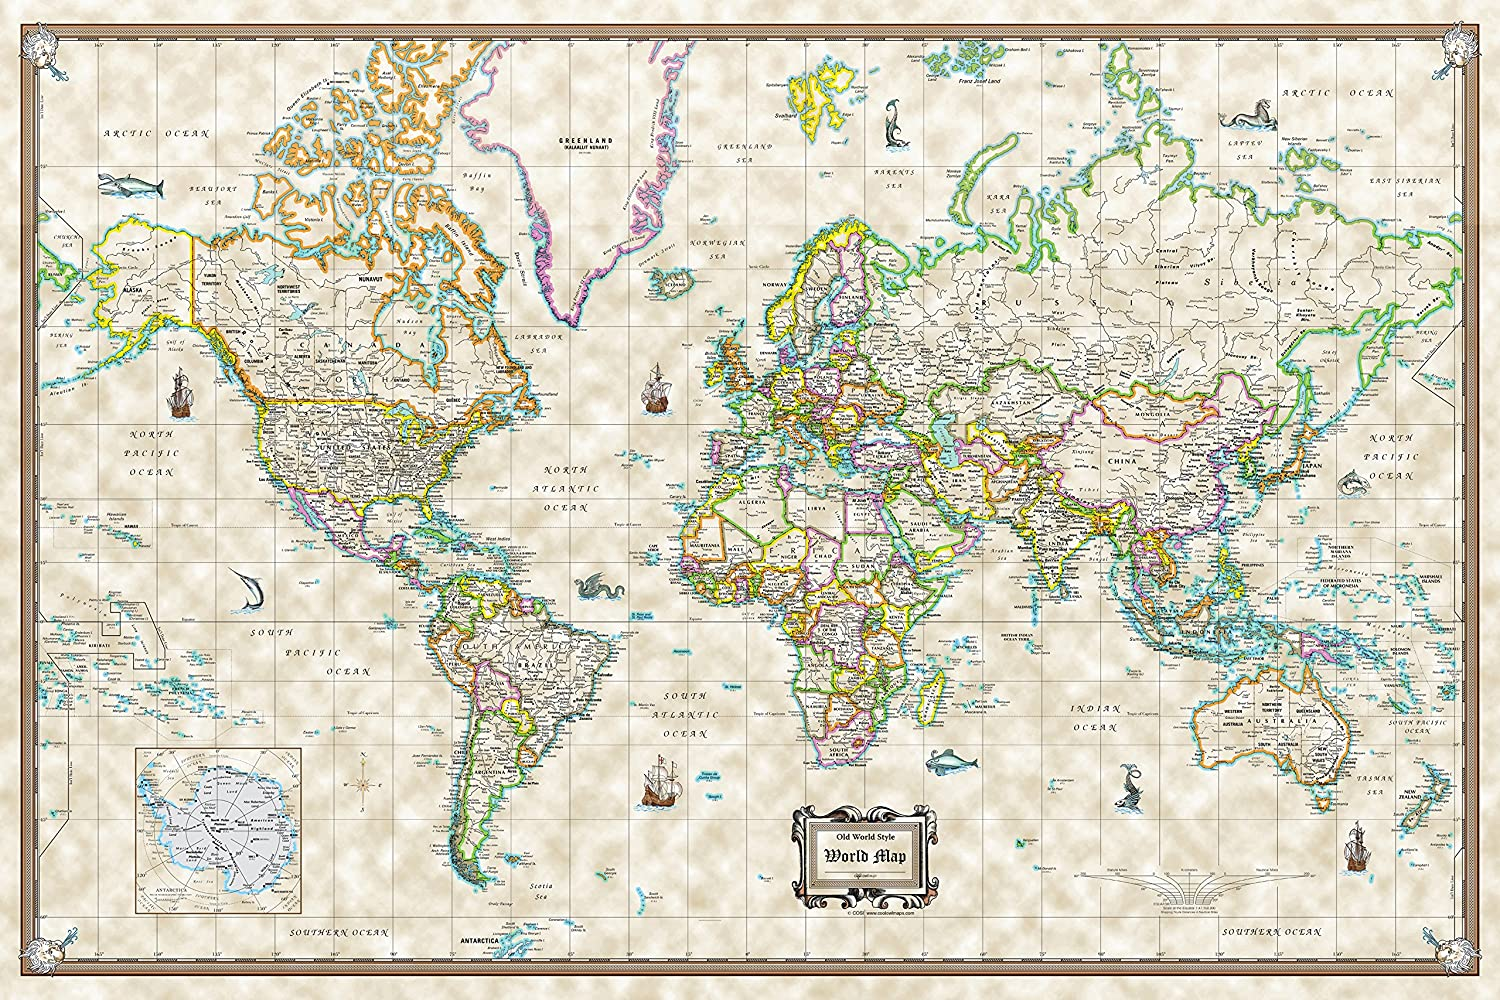 Amazon antique world wall map old world style poster size amazon antique world wall map old world style poster size 36x24 rolled paper office products gumiabroncs Choice Image